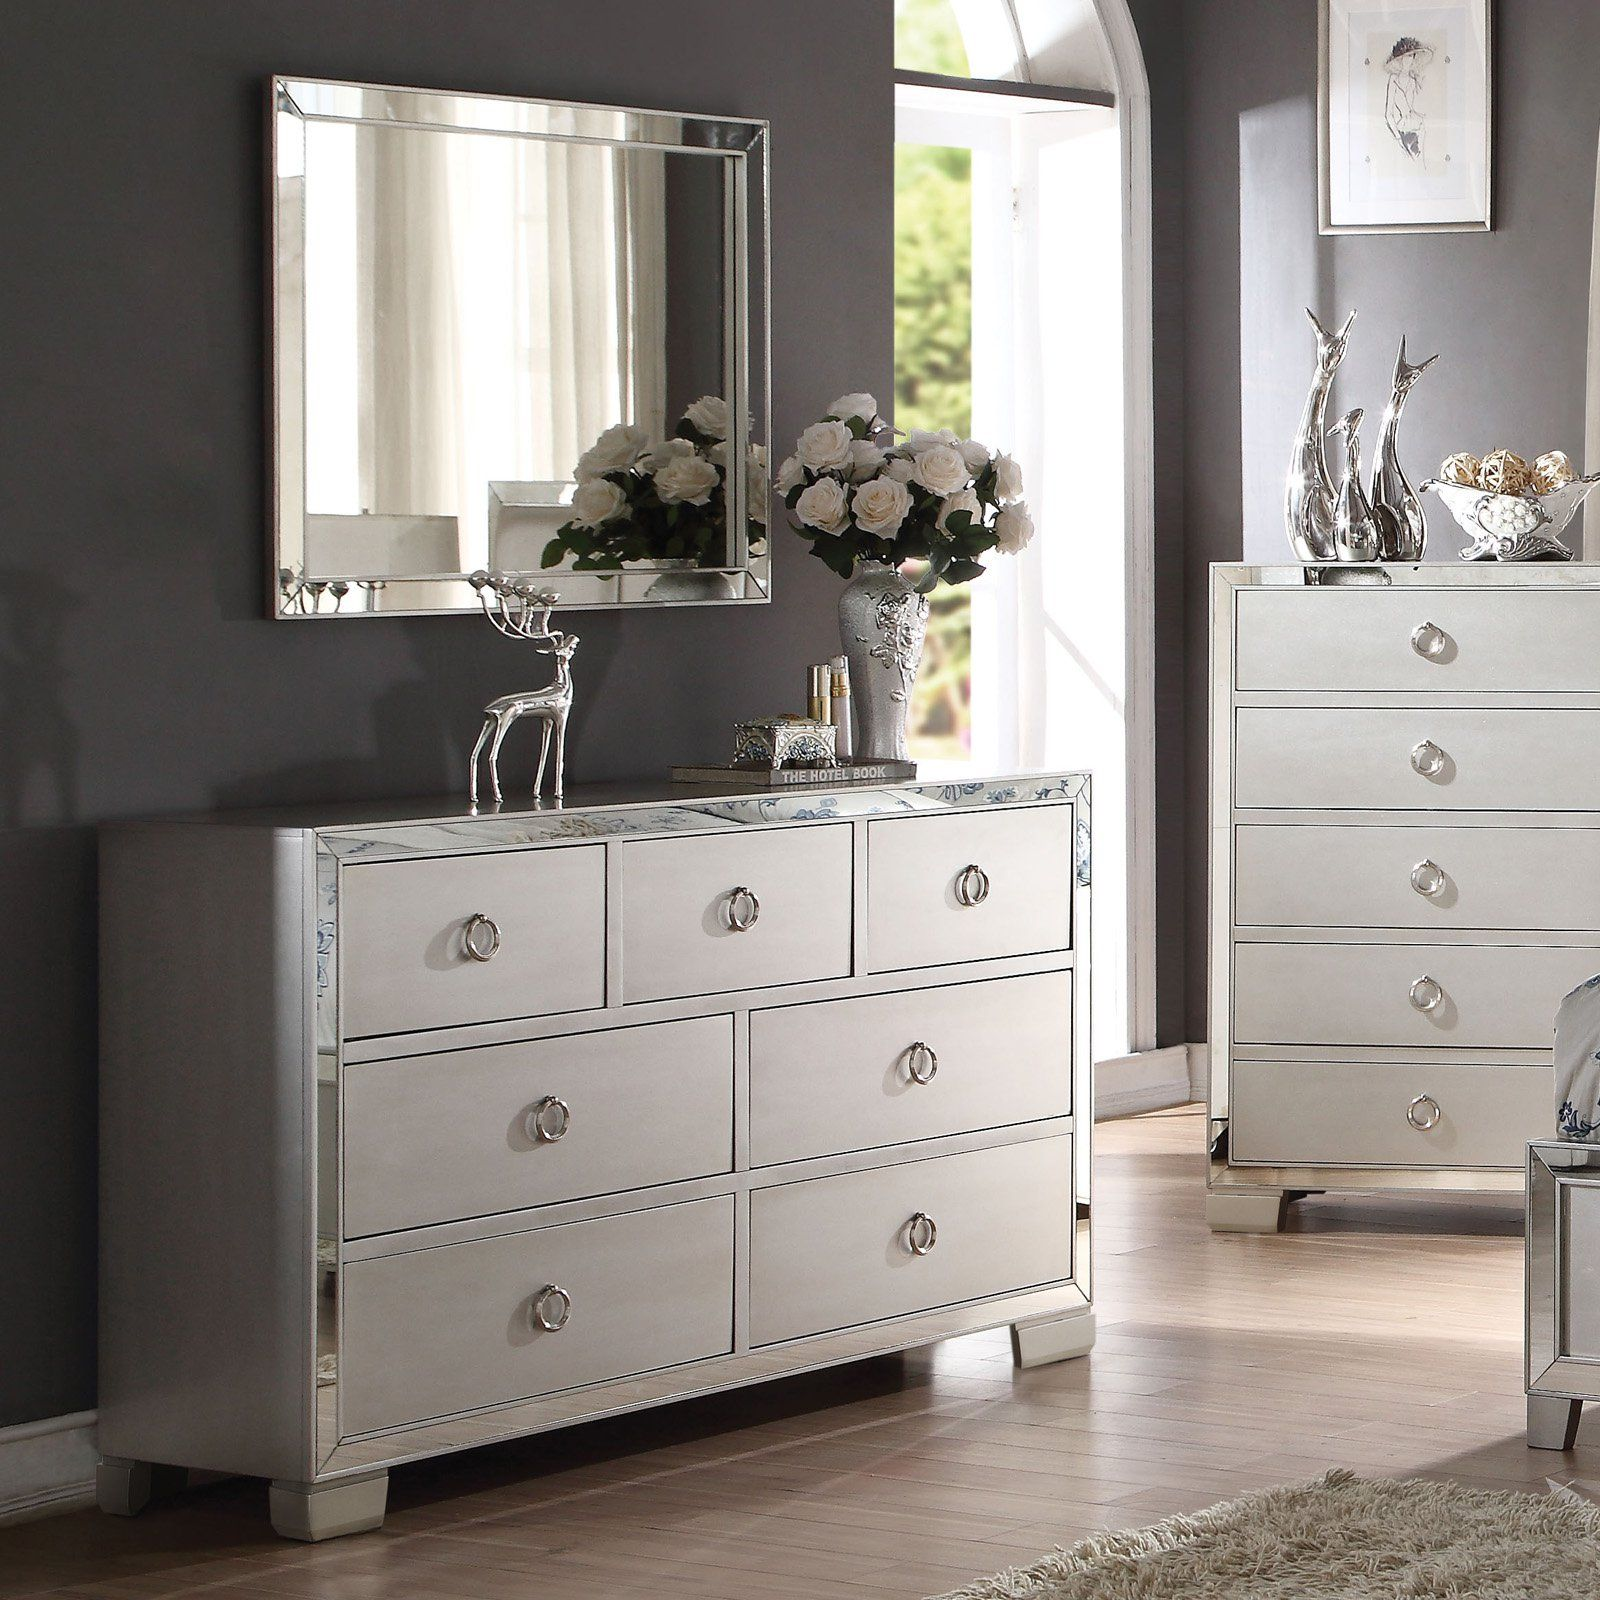 Acme Furniture Voeville Ii Platinum 7 Drawer Dresser With Optional Mirror In 2021 Acme Furniture White Furniture Living Room Furniture [ 1600 x 1600 Pixel ]